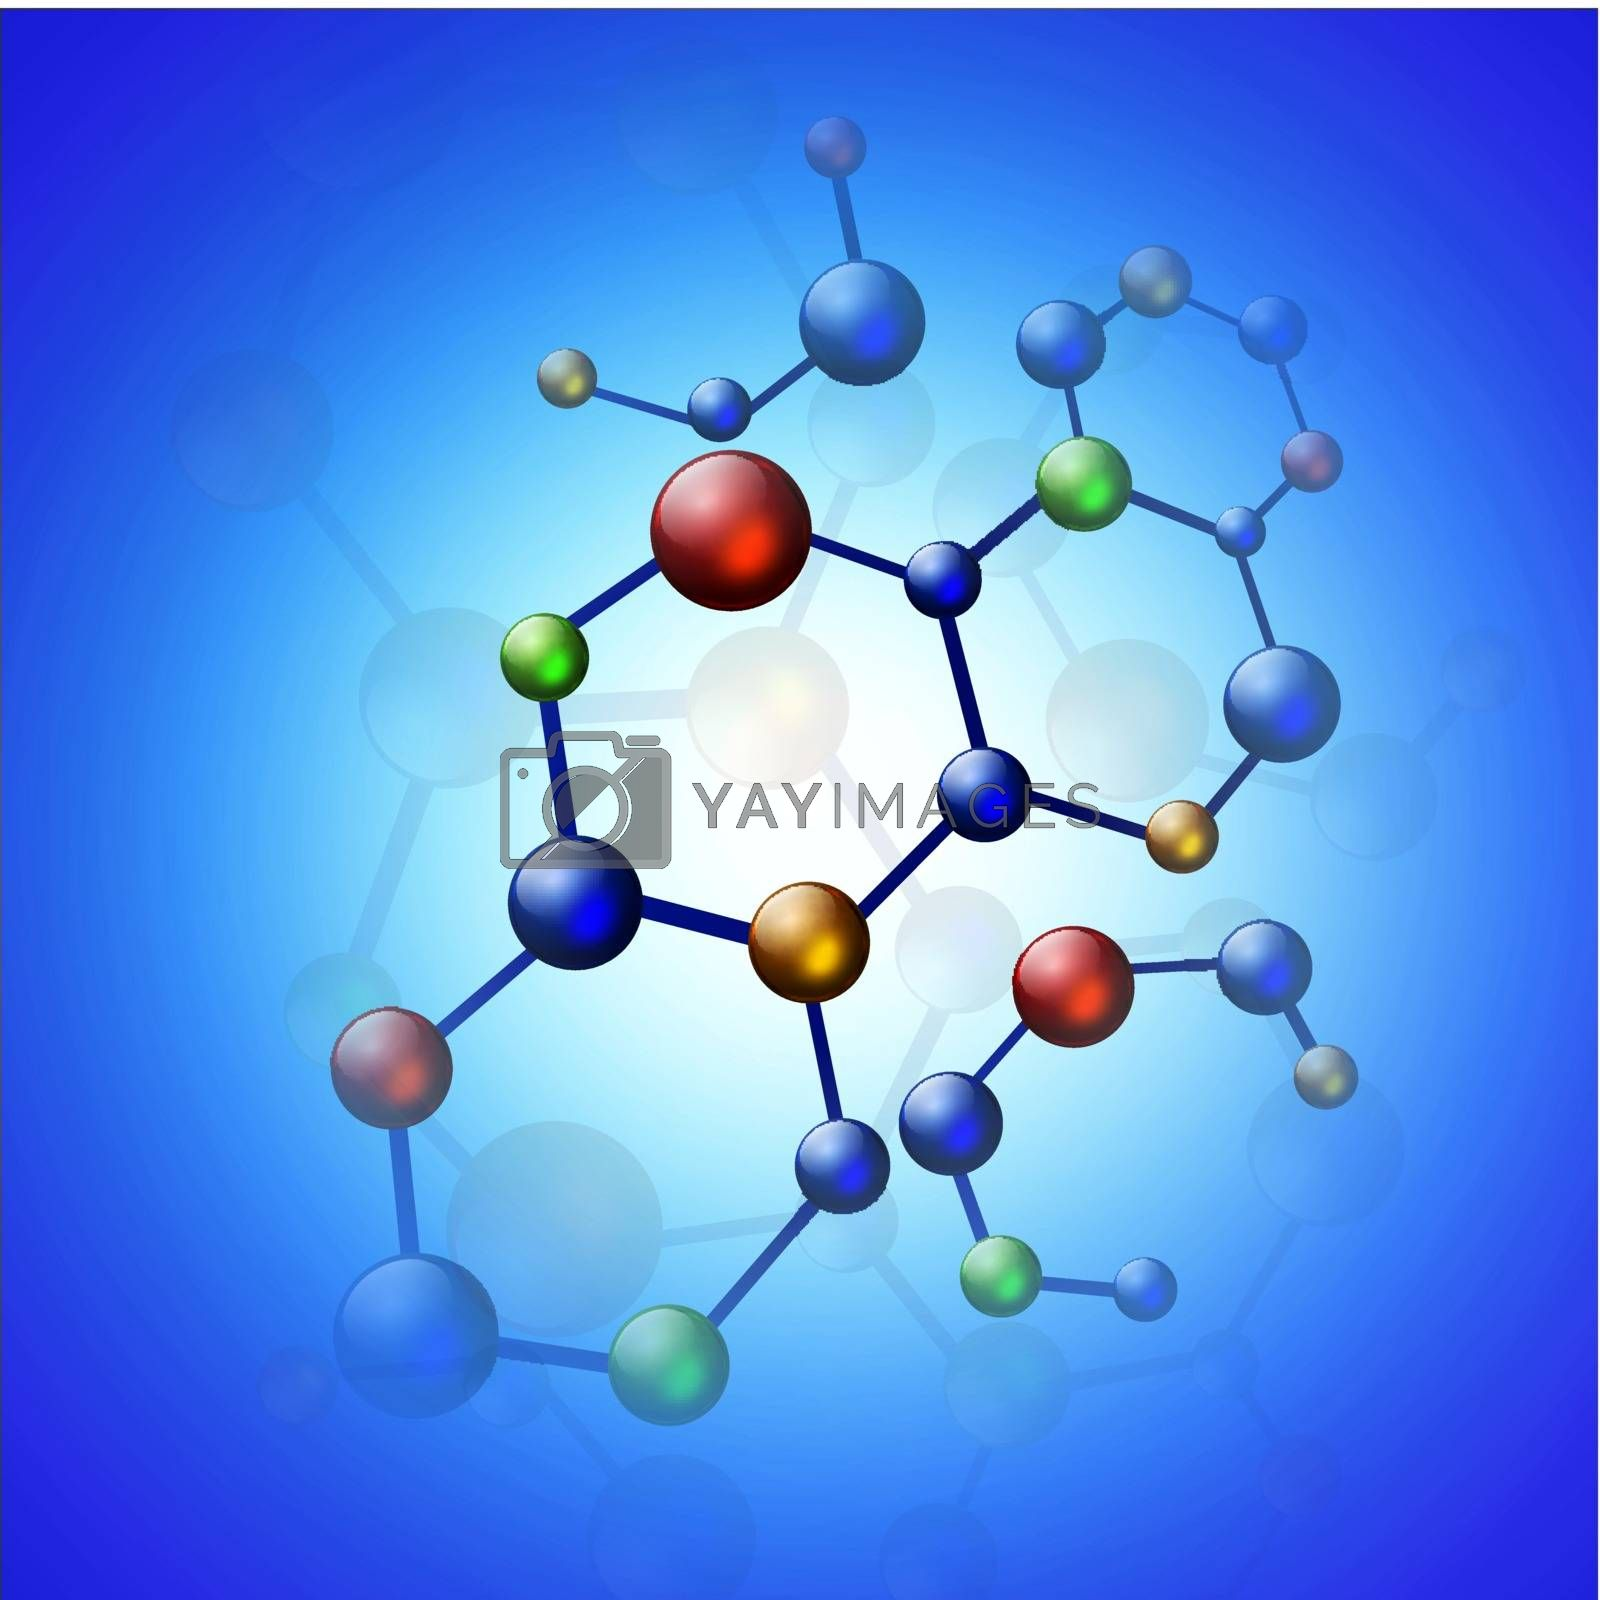 multicolored molecule illustration over blue background